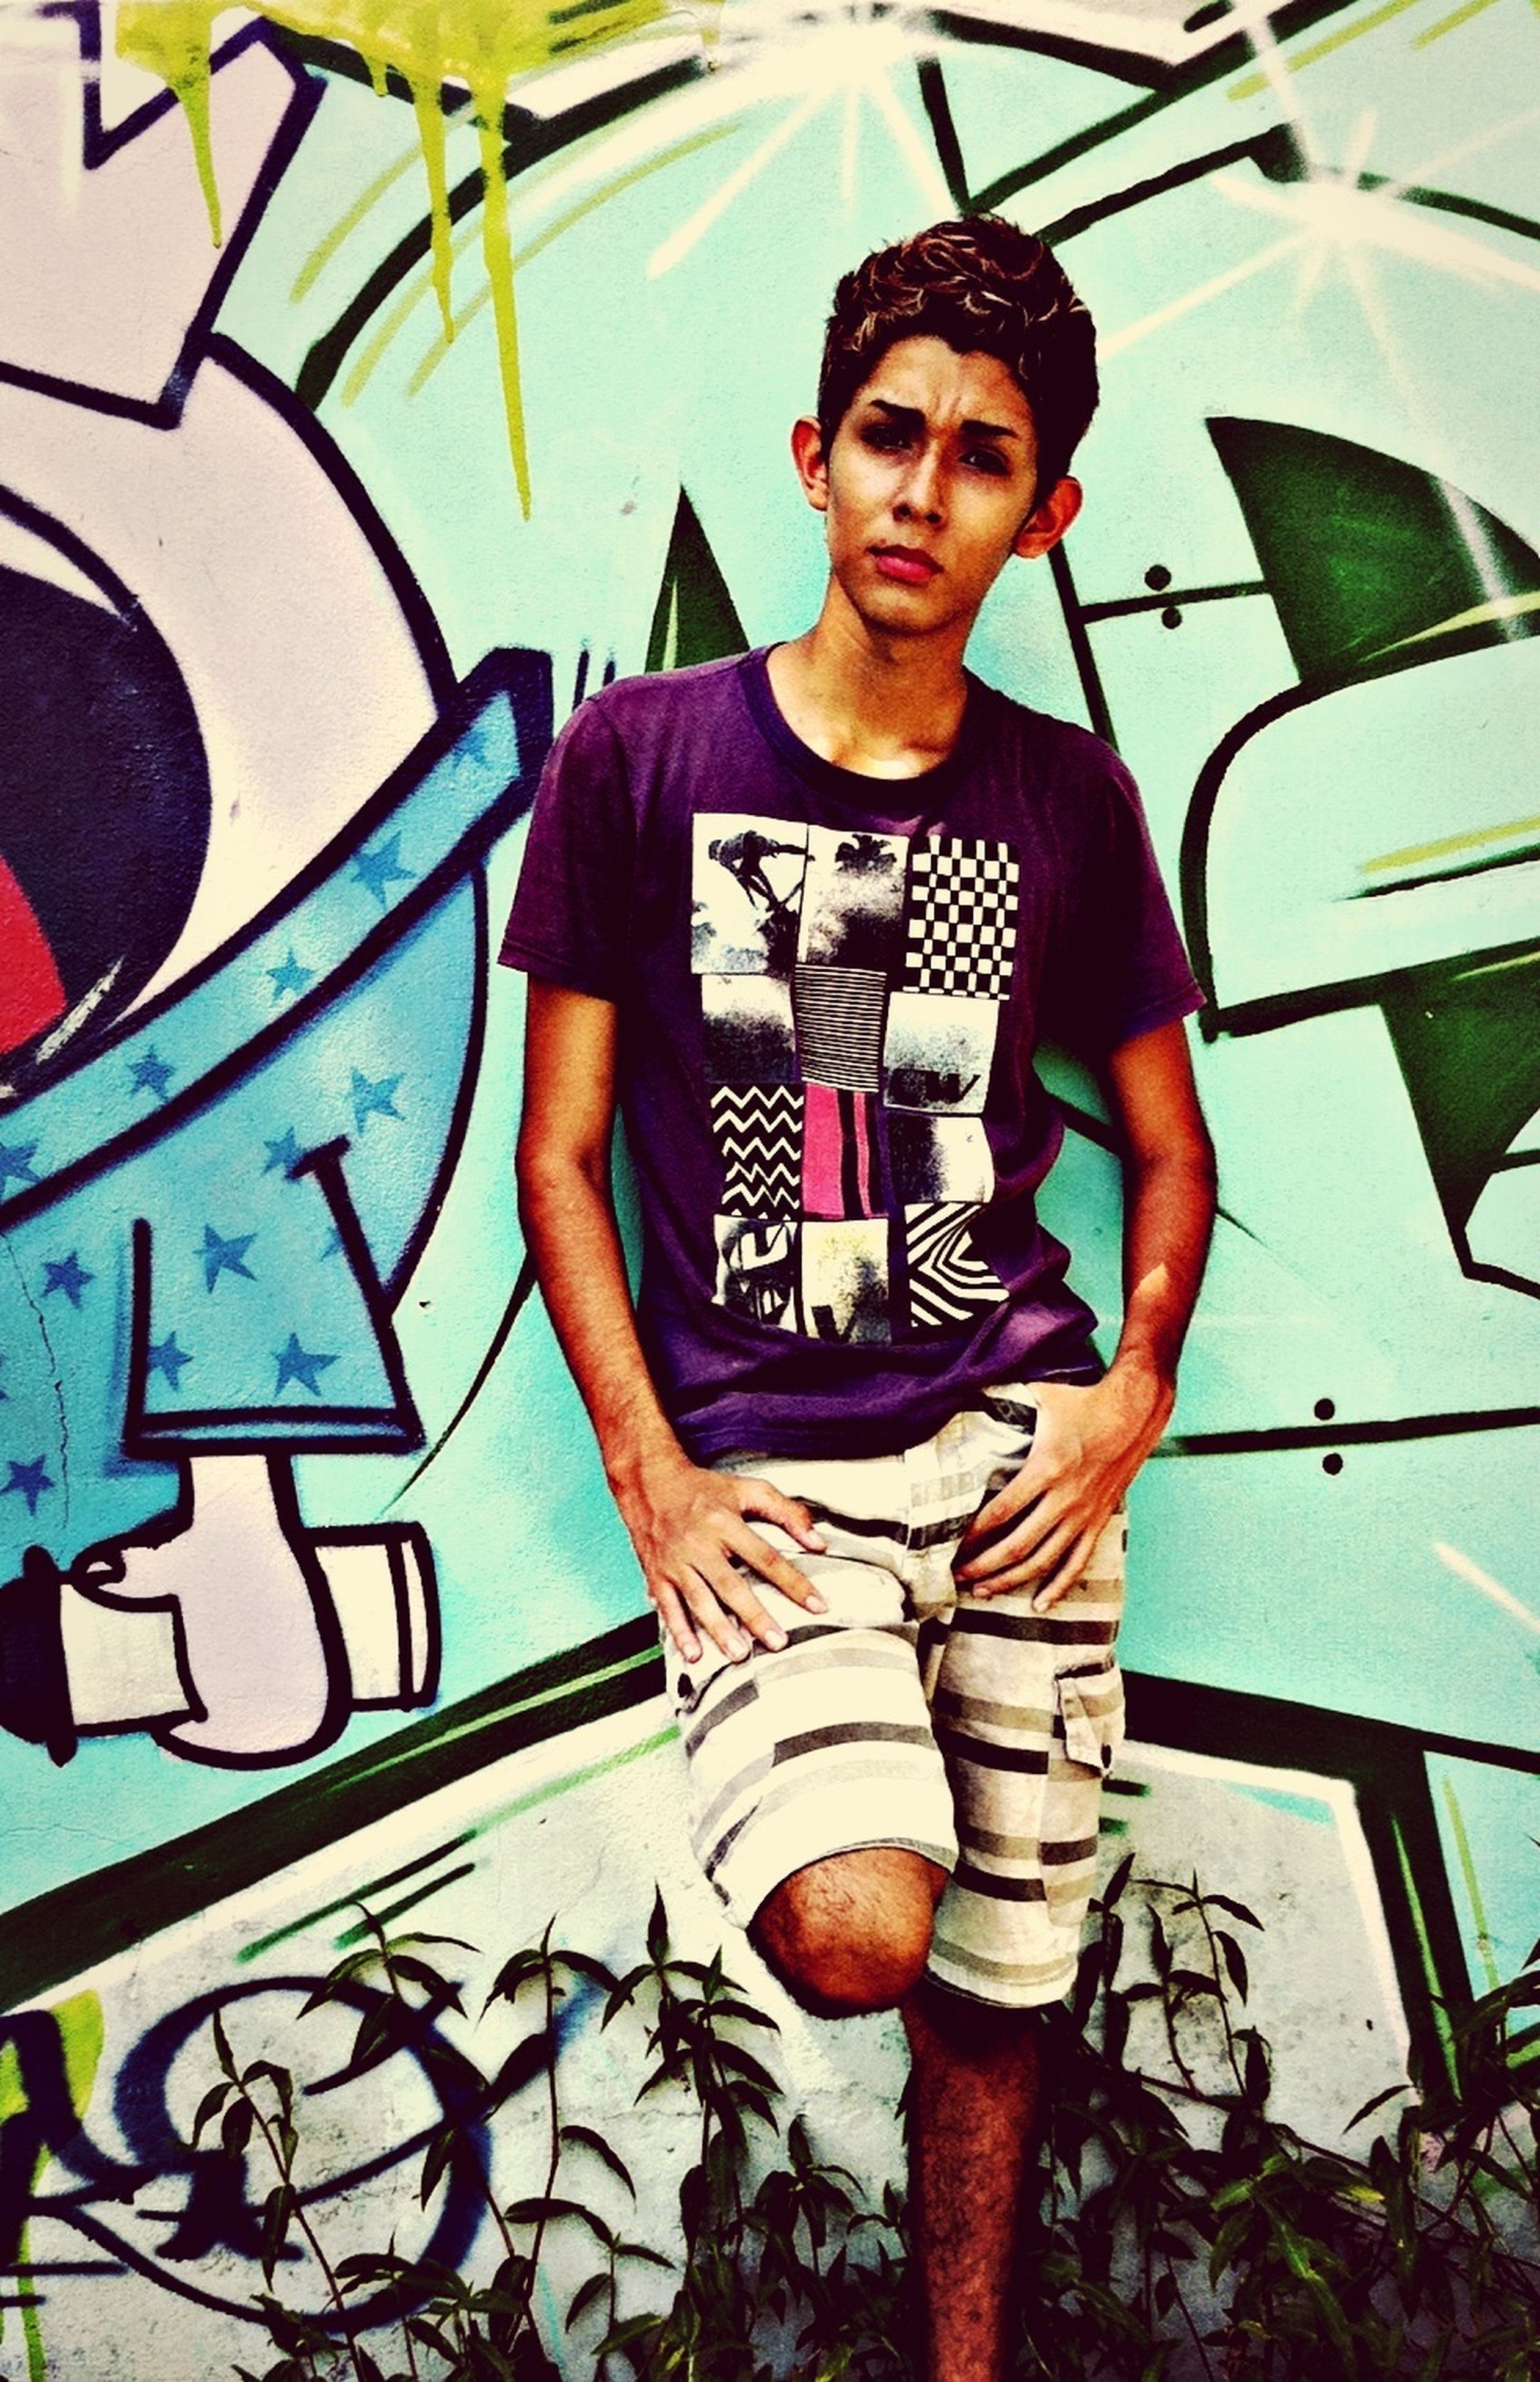 young adult, lifestyles, person, looking at camera, leisure activity, portrait, casual clothing, young women, smiling, front view, happiness, graffiti, three quarter length, standing, wall - building feature, enjoyment